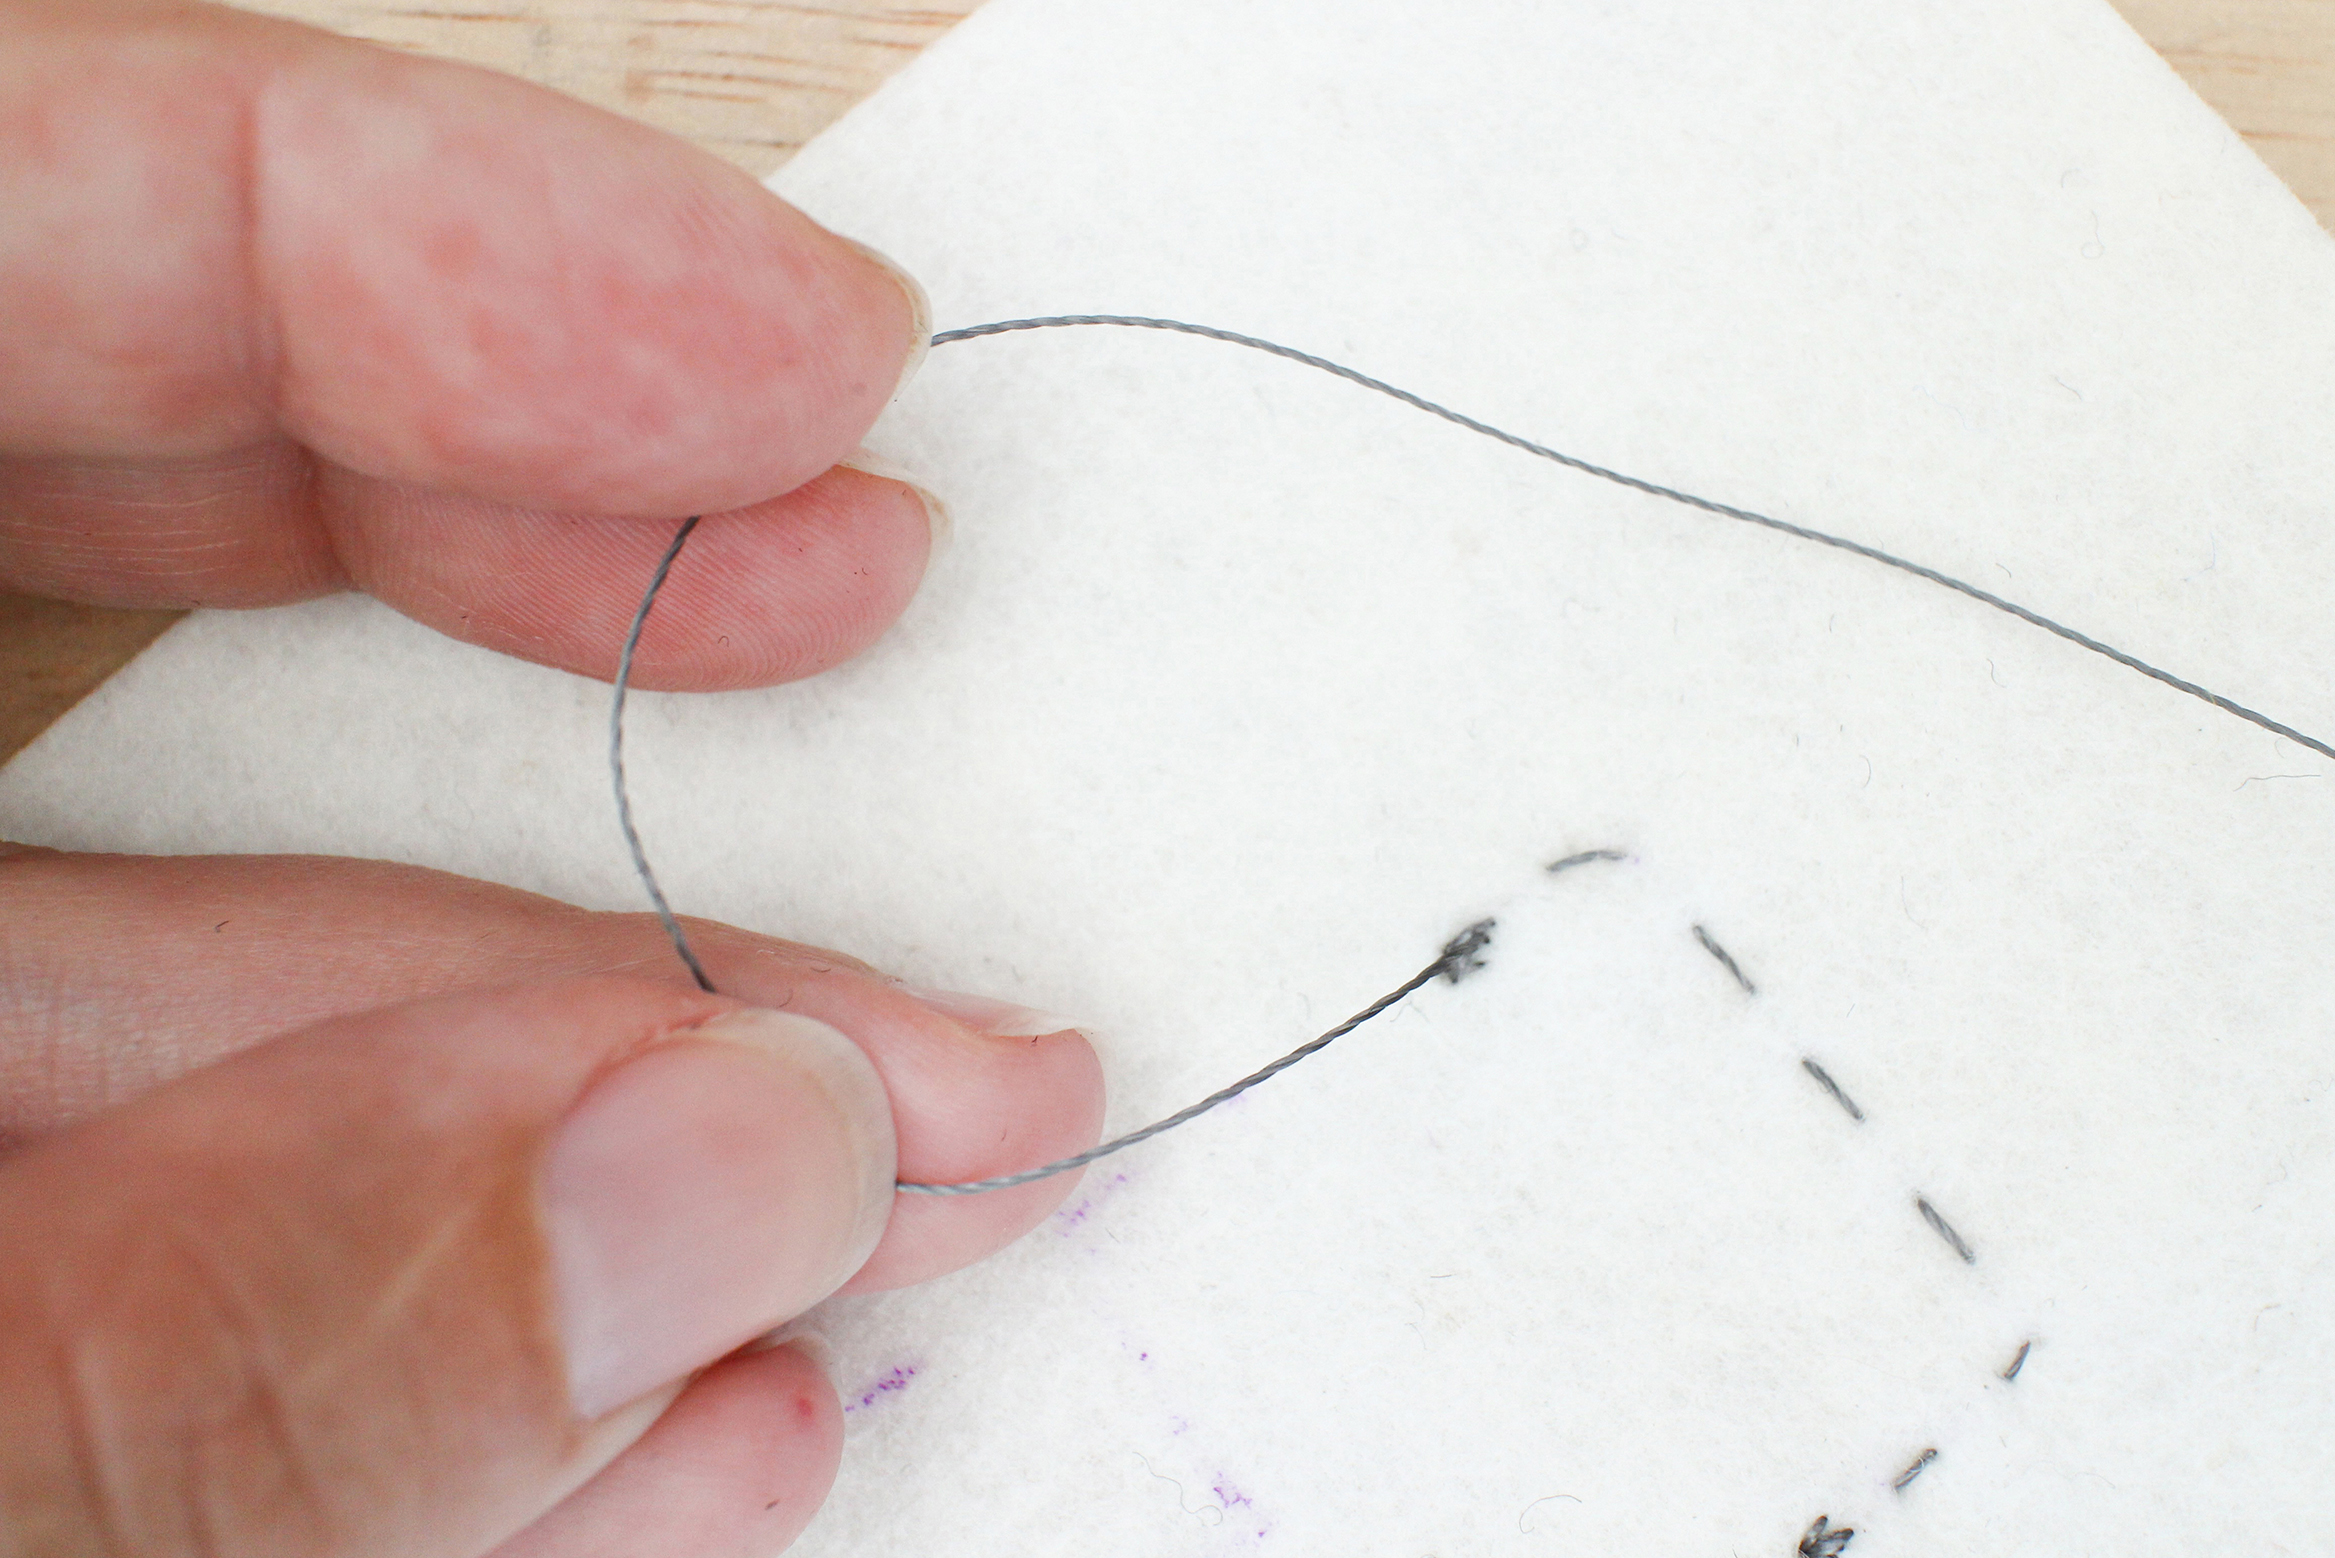 Sew A Circuit Thread Common Schematic Symbols Used In Diagrams Pull The And Guide Knot With Your Hand Down Towards Fabric Leaving Small Loop Place Point Of Needle Middle